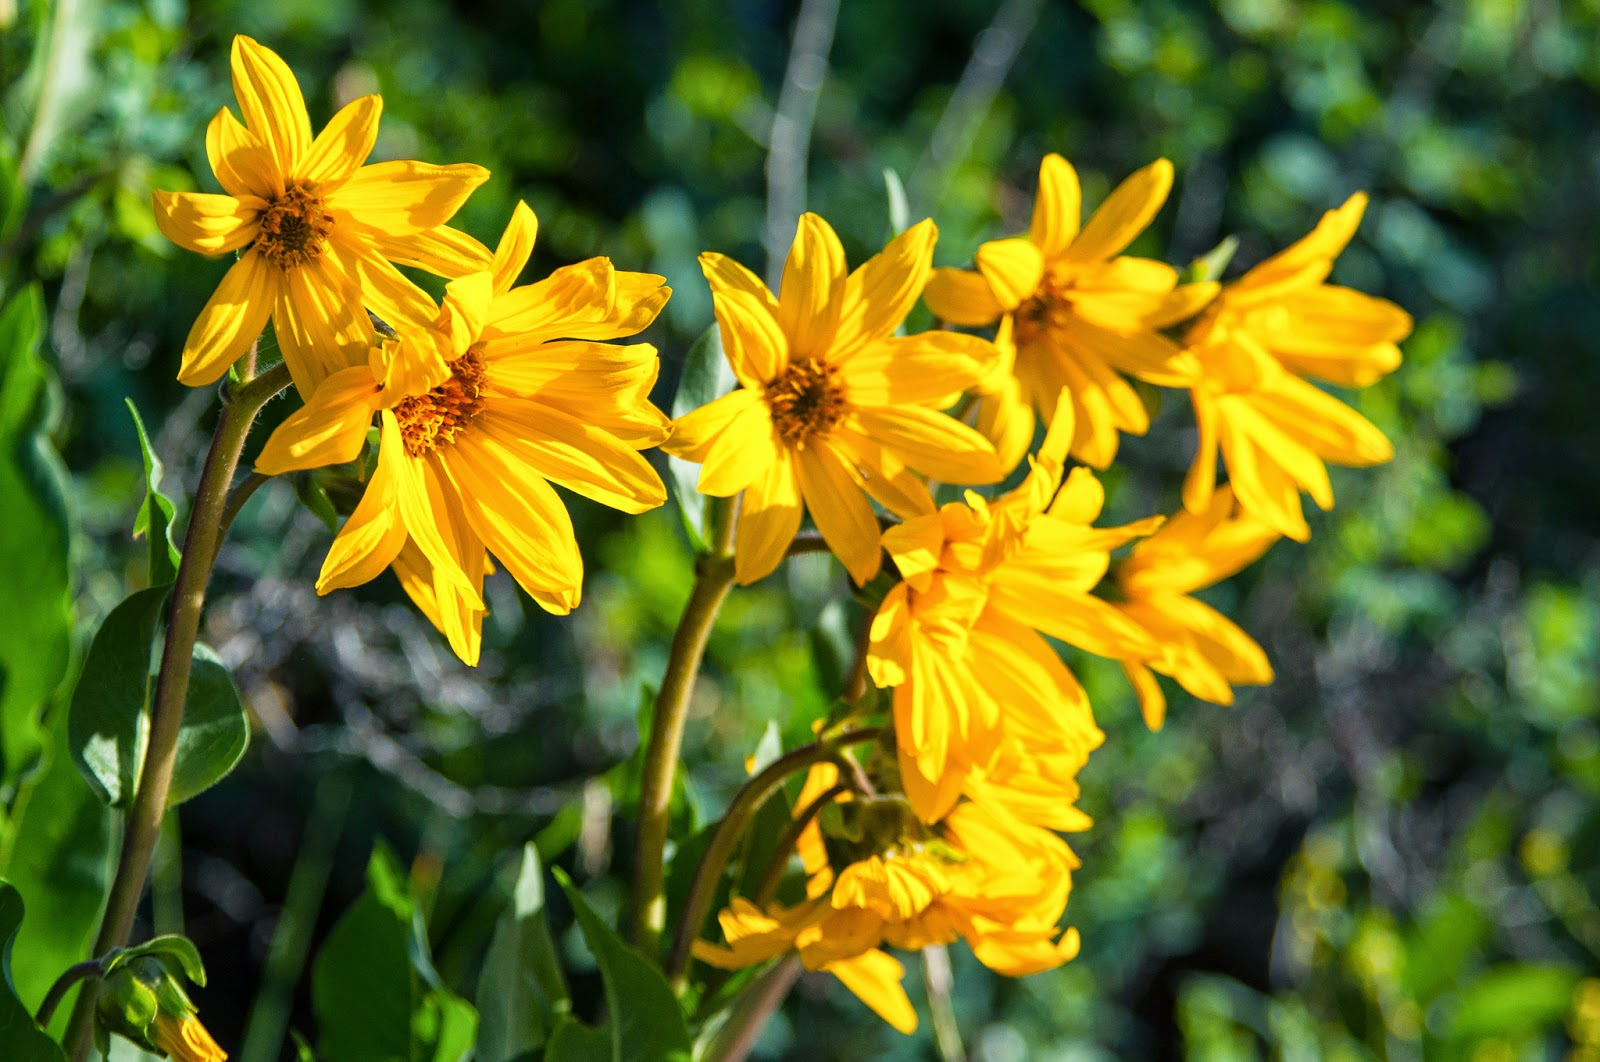 Mule's Ear Sunflowers